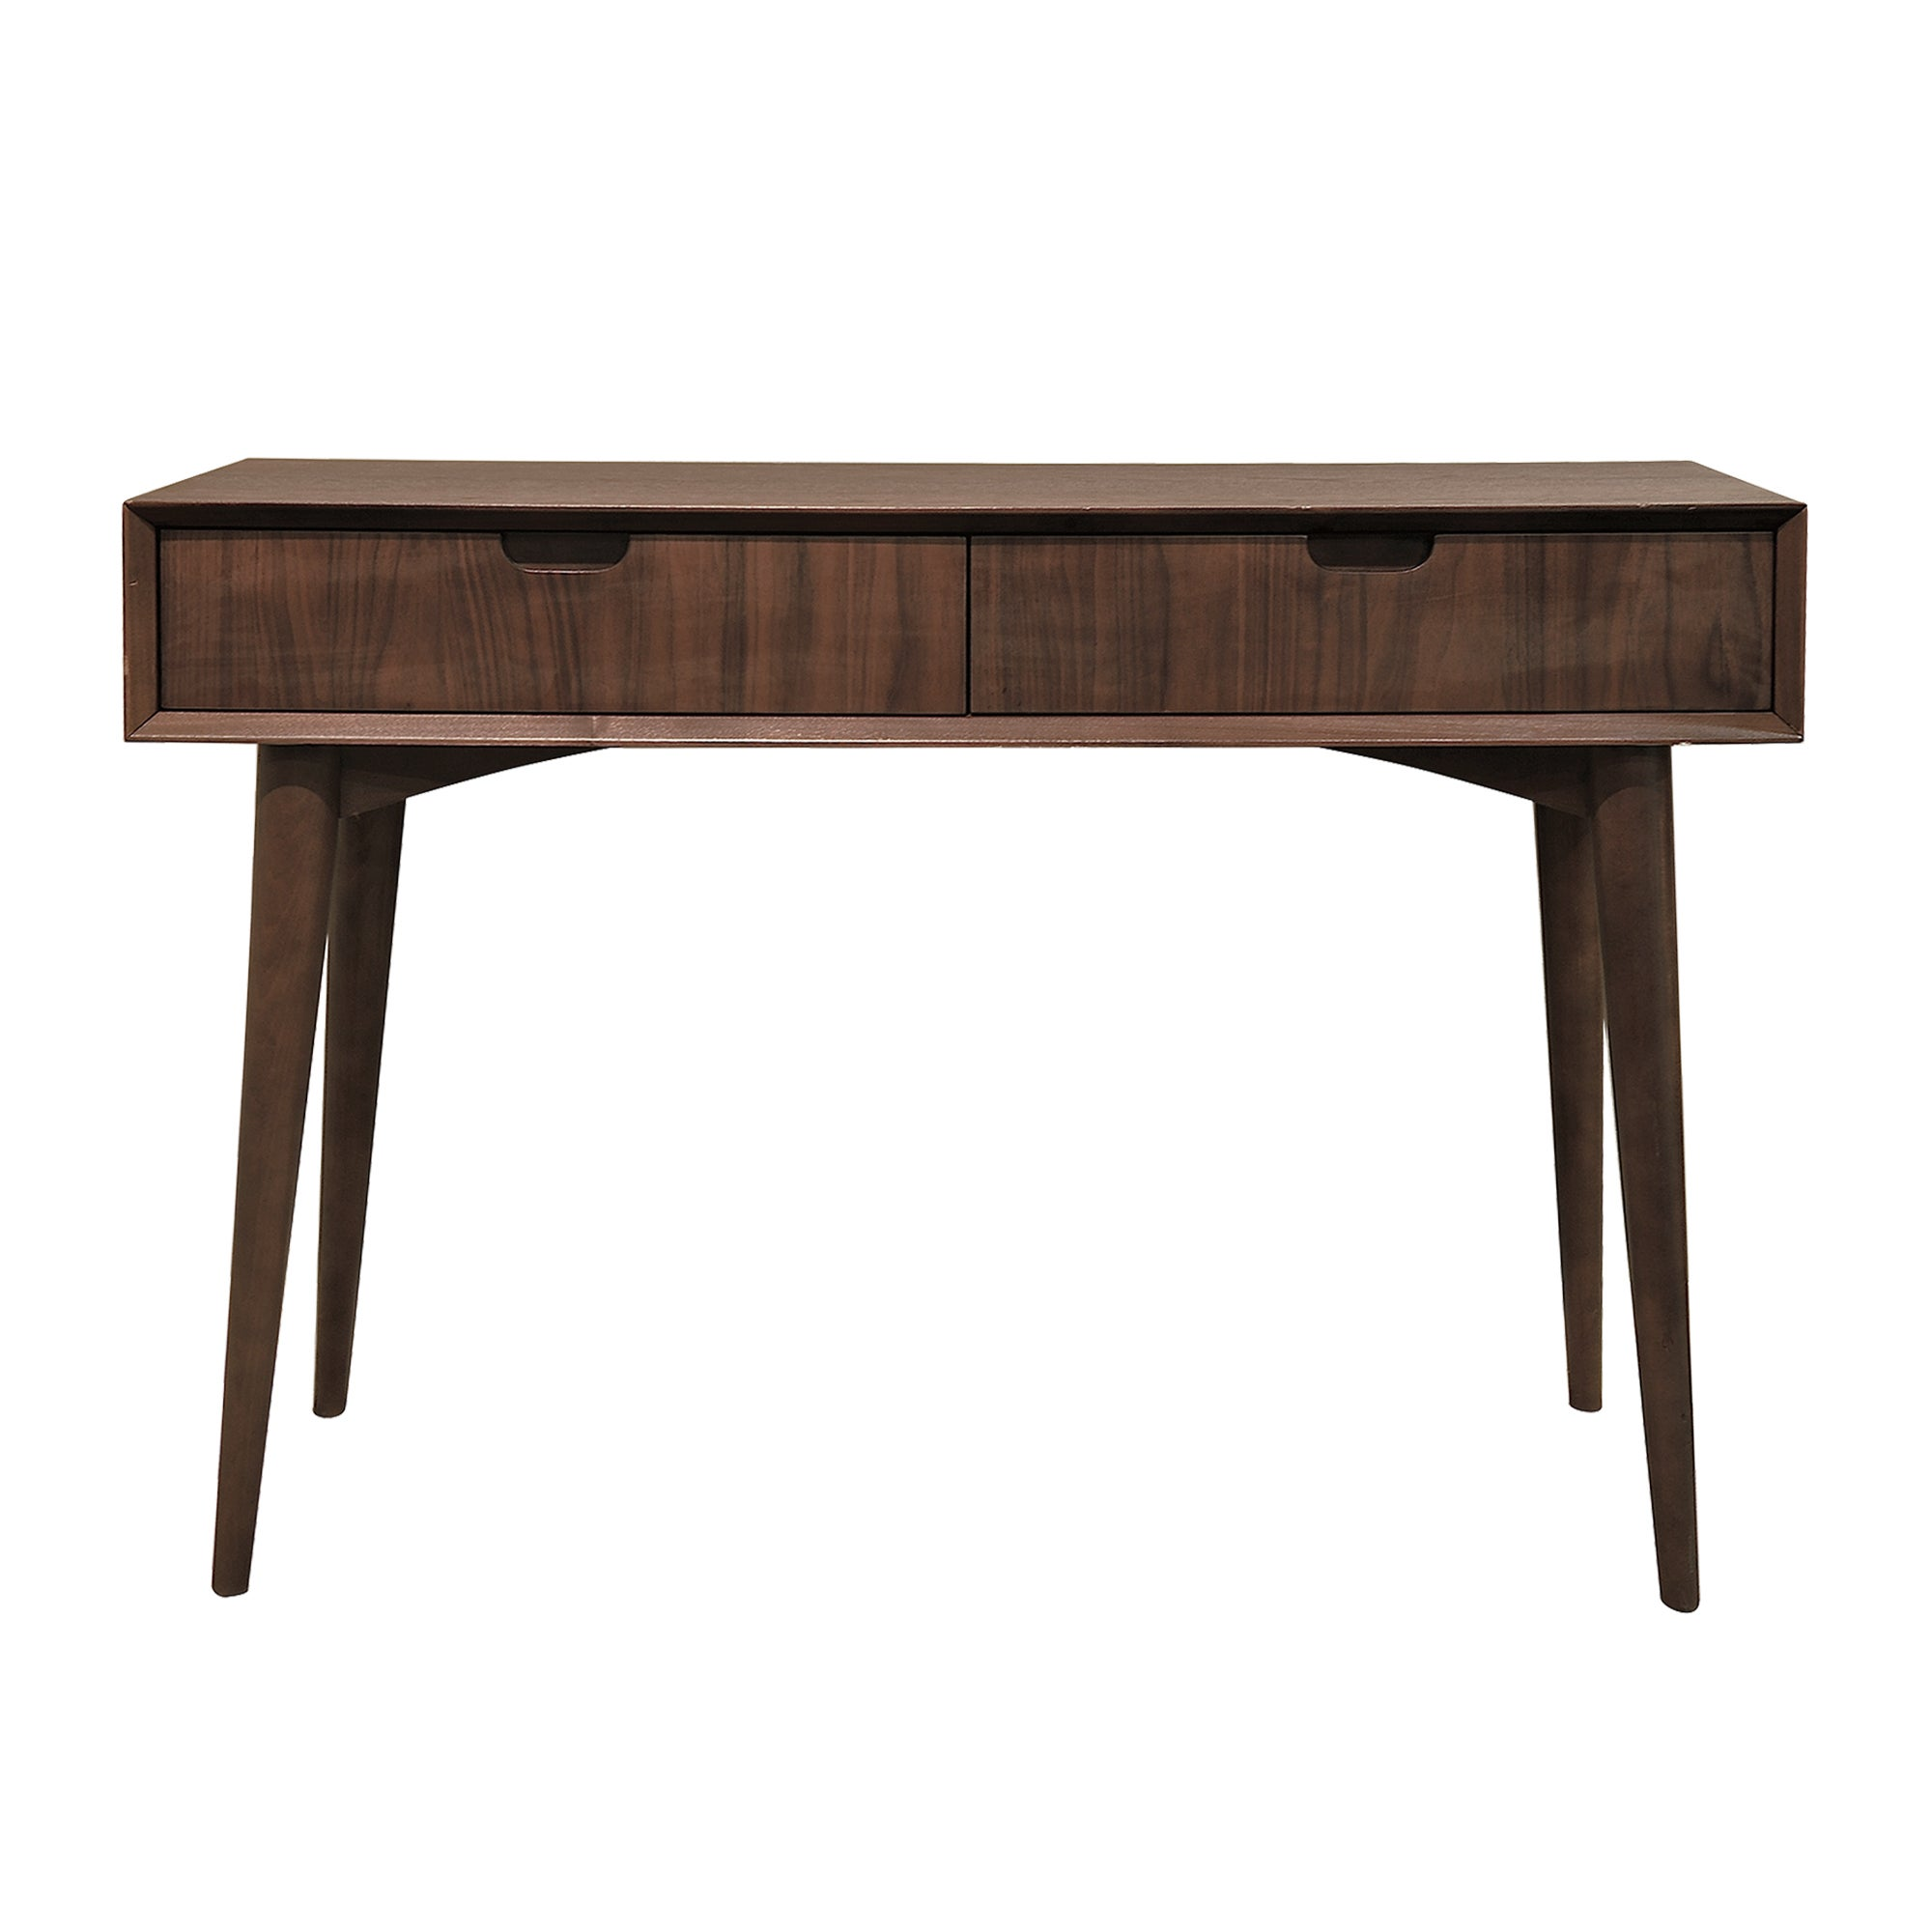 Skandi Walnut Console Table with Drawer